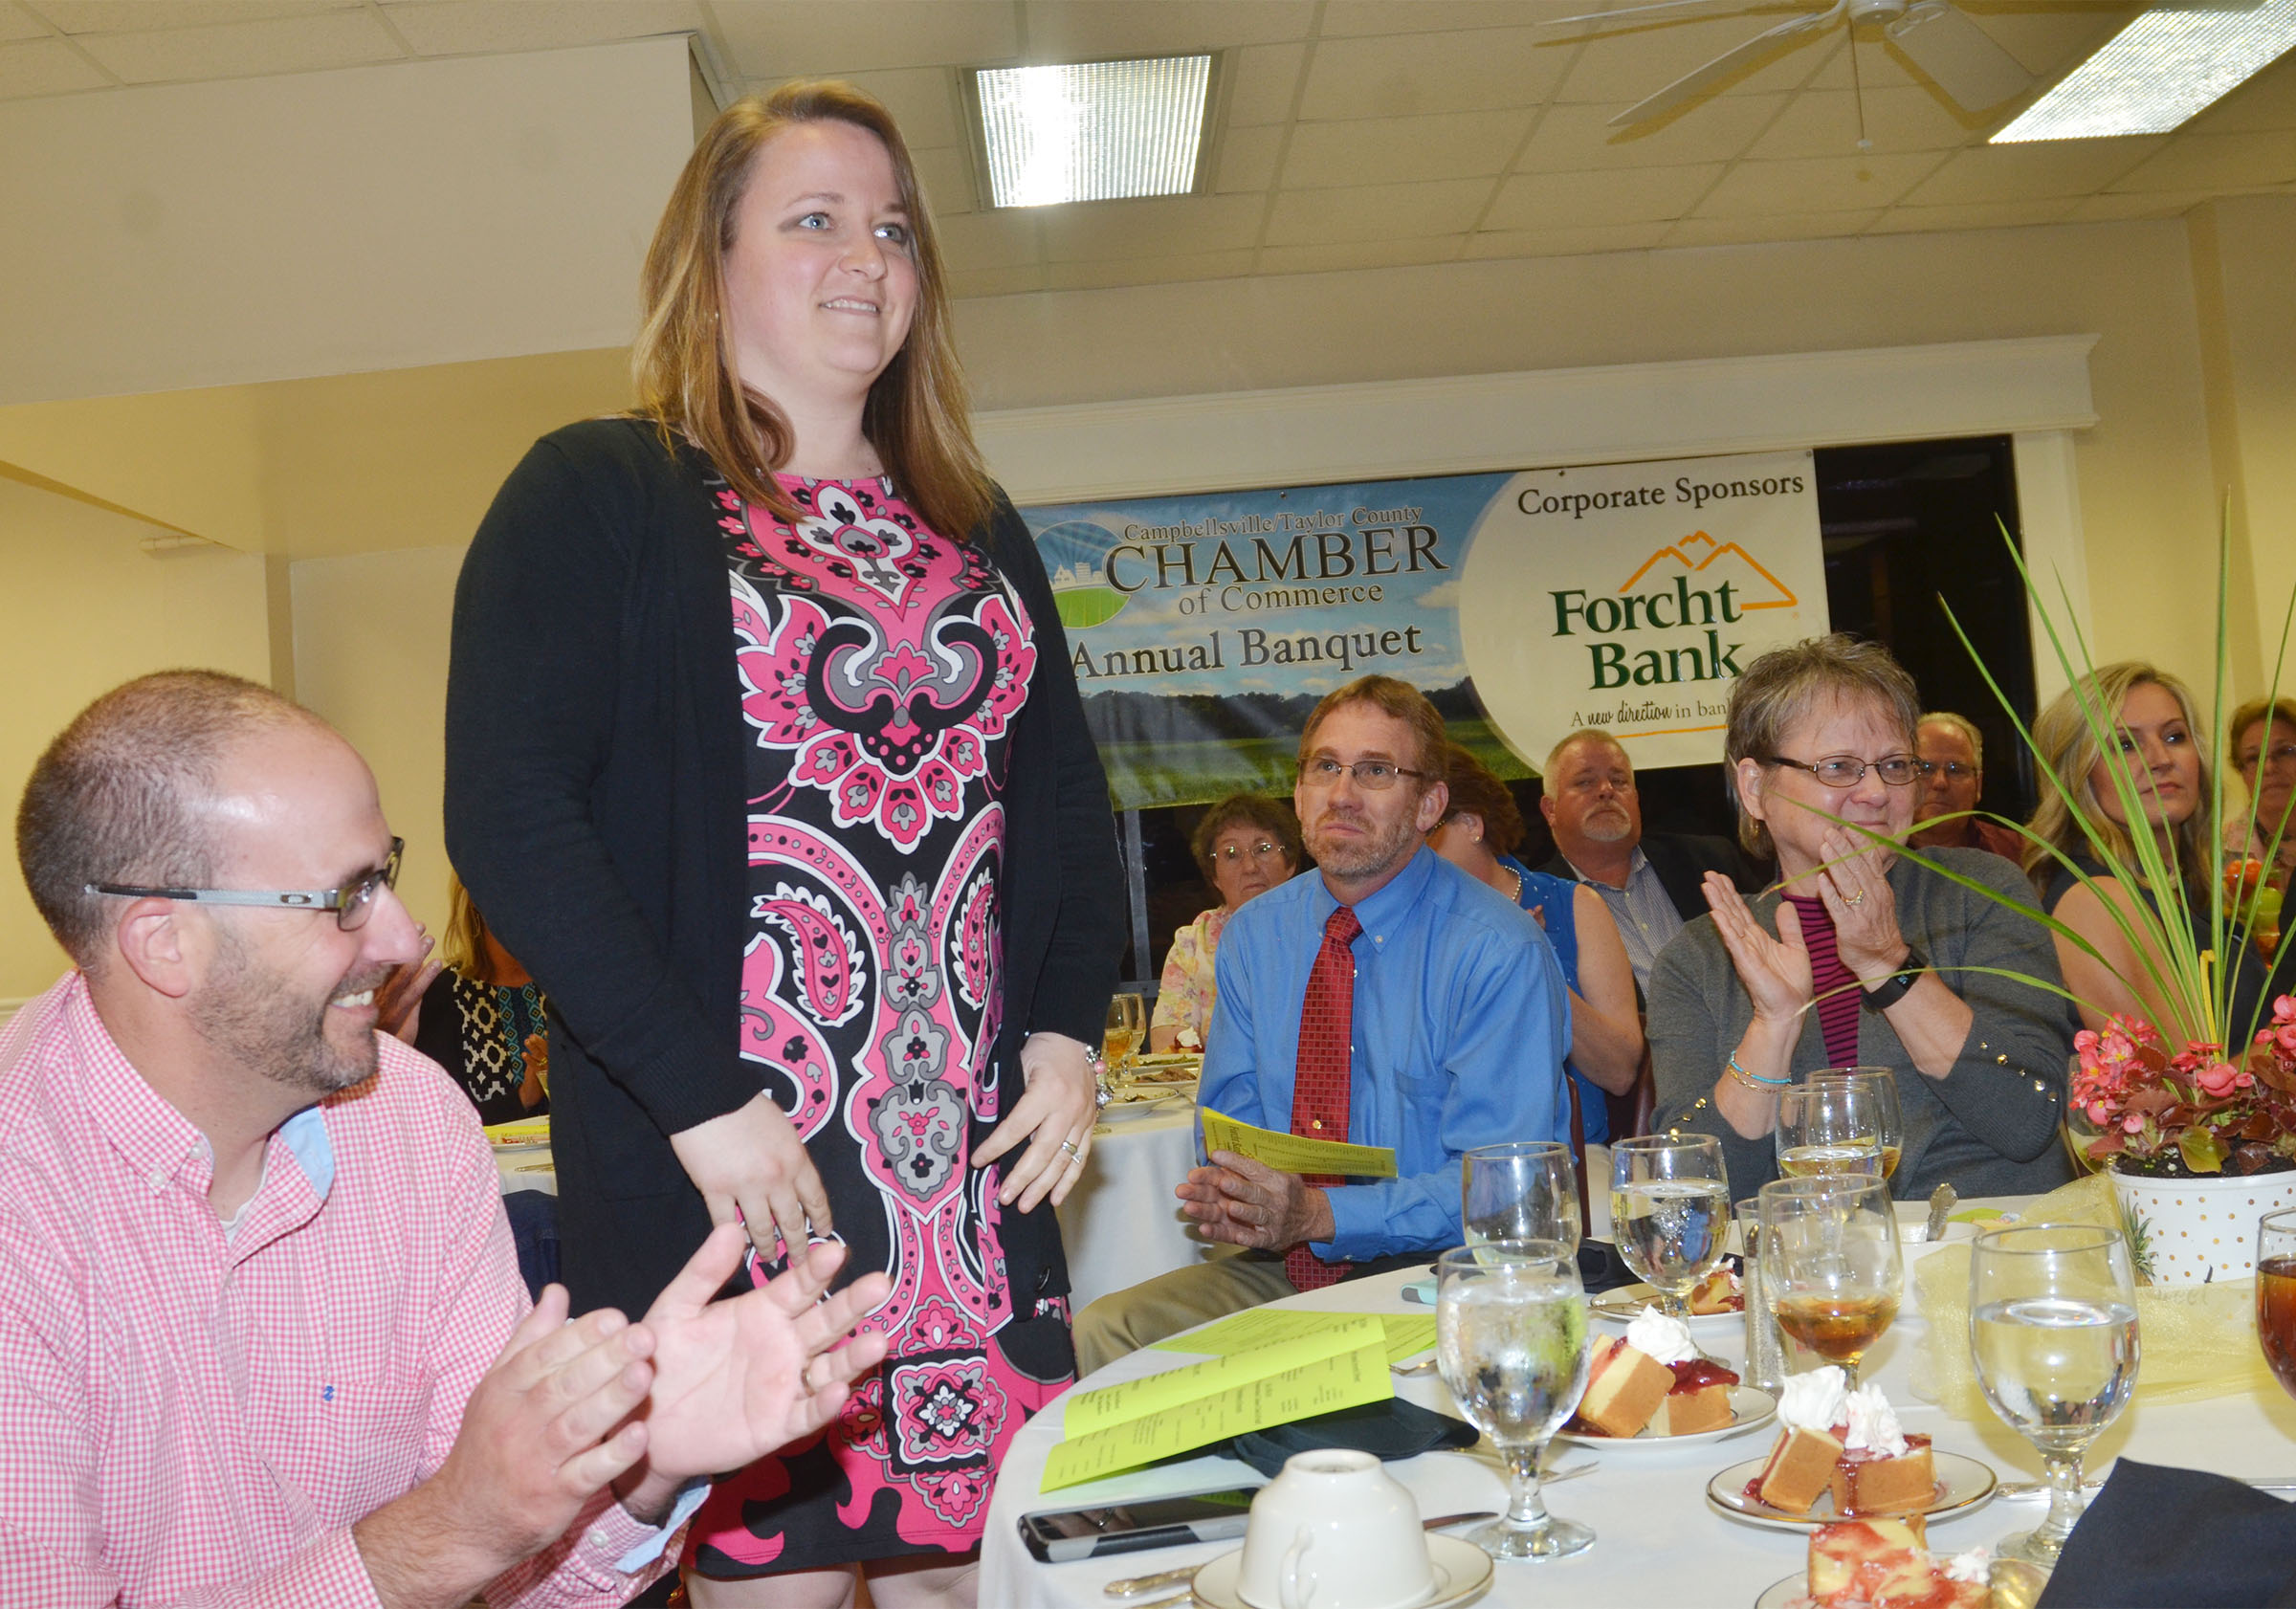 Katie Campbell, an exceptional child educator at CMS, is one of four teachers nominated for this year's Campbellsville/Taylor County Chamber of Commerce Educator of the Year award. The nominees were honored at the Chamber's annual banquet on Thursday, April 27.